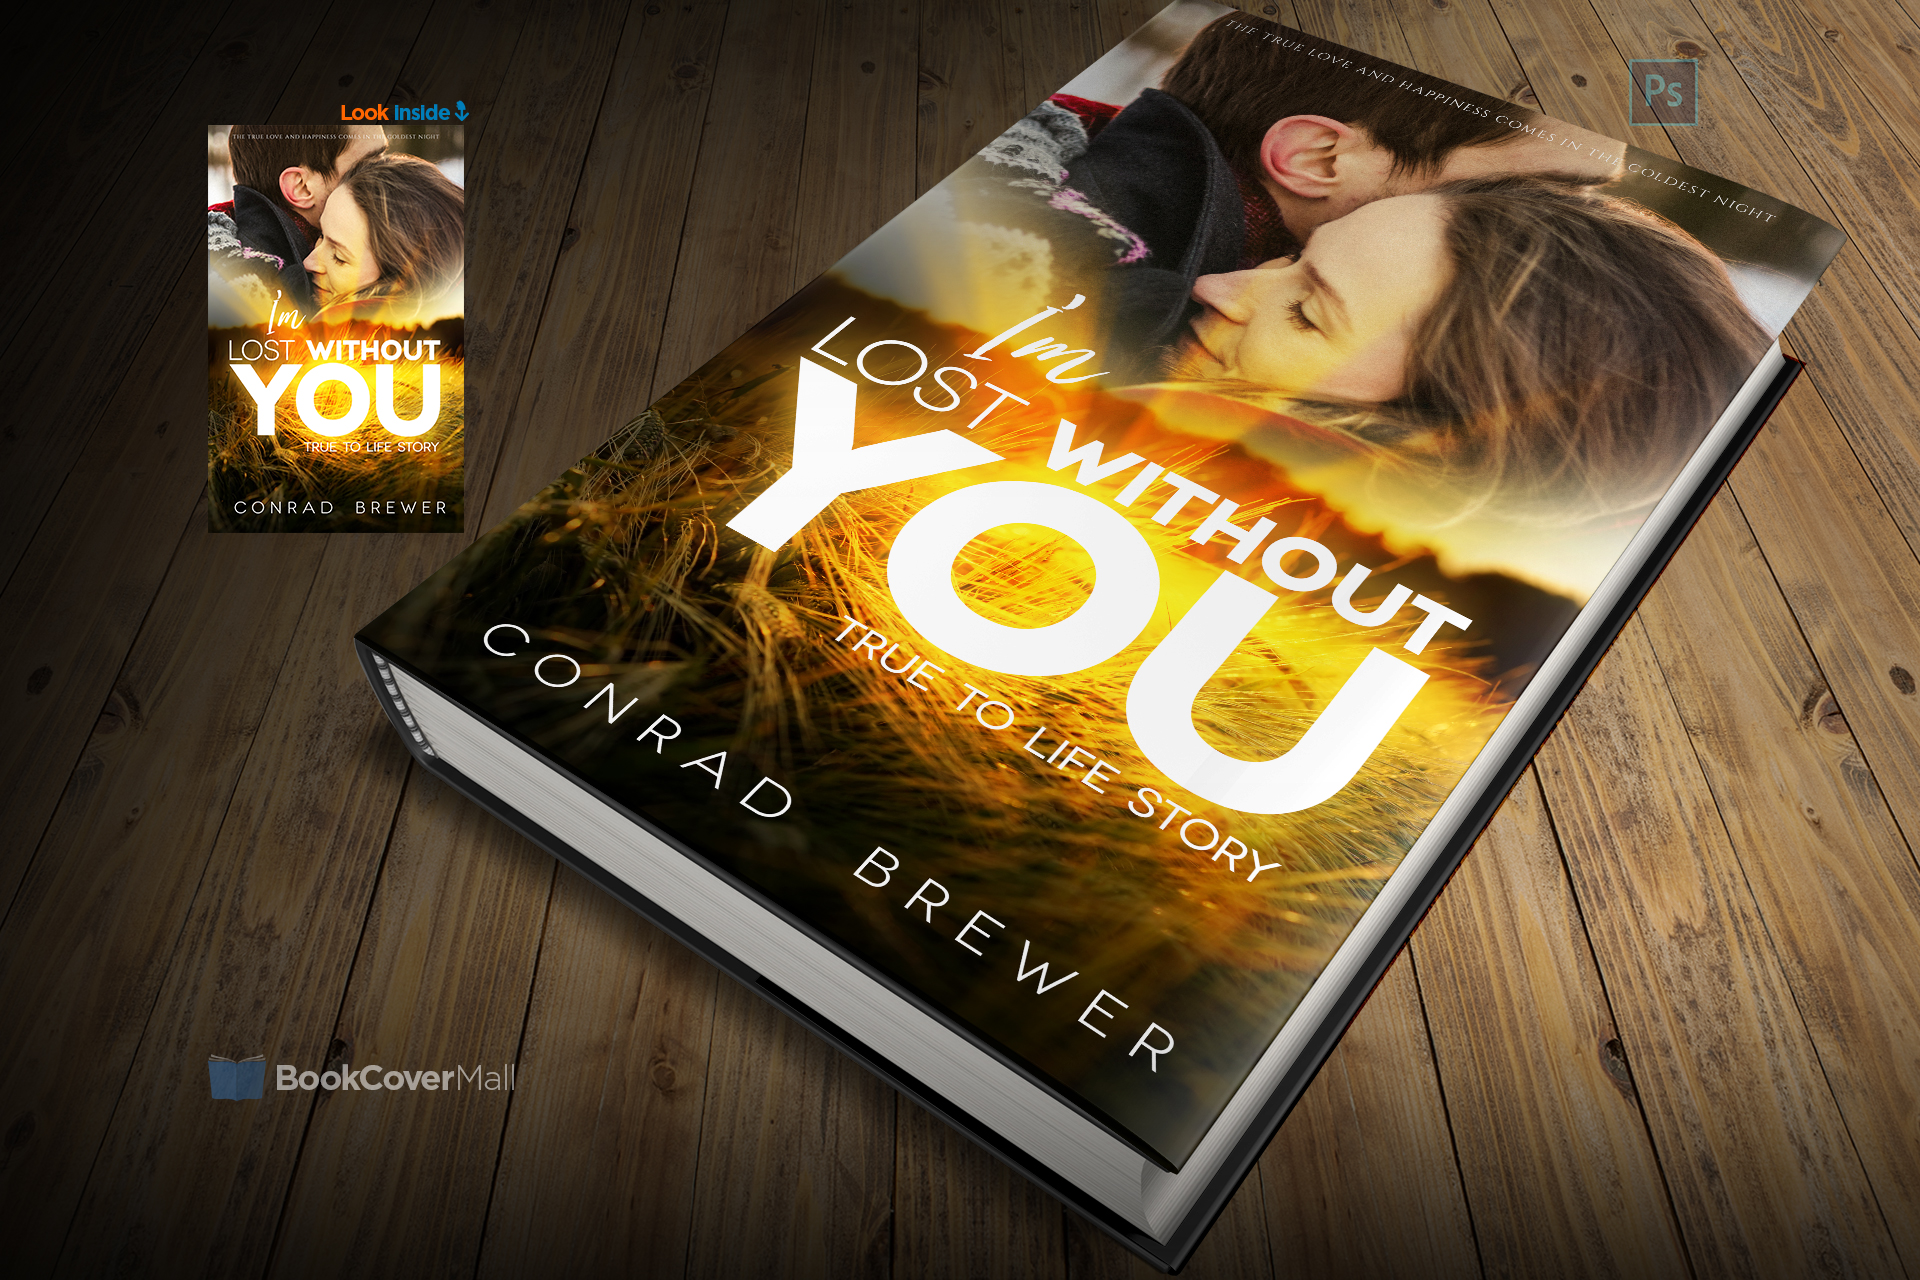 lost without you wallpapers in jpg format for free download